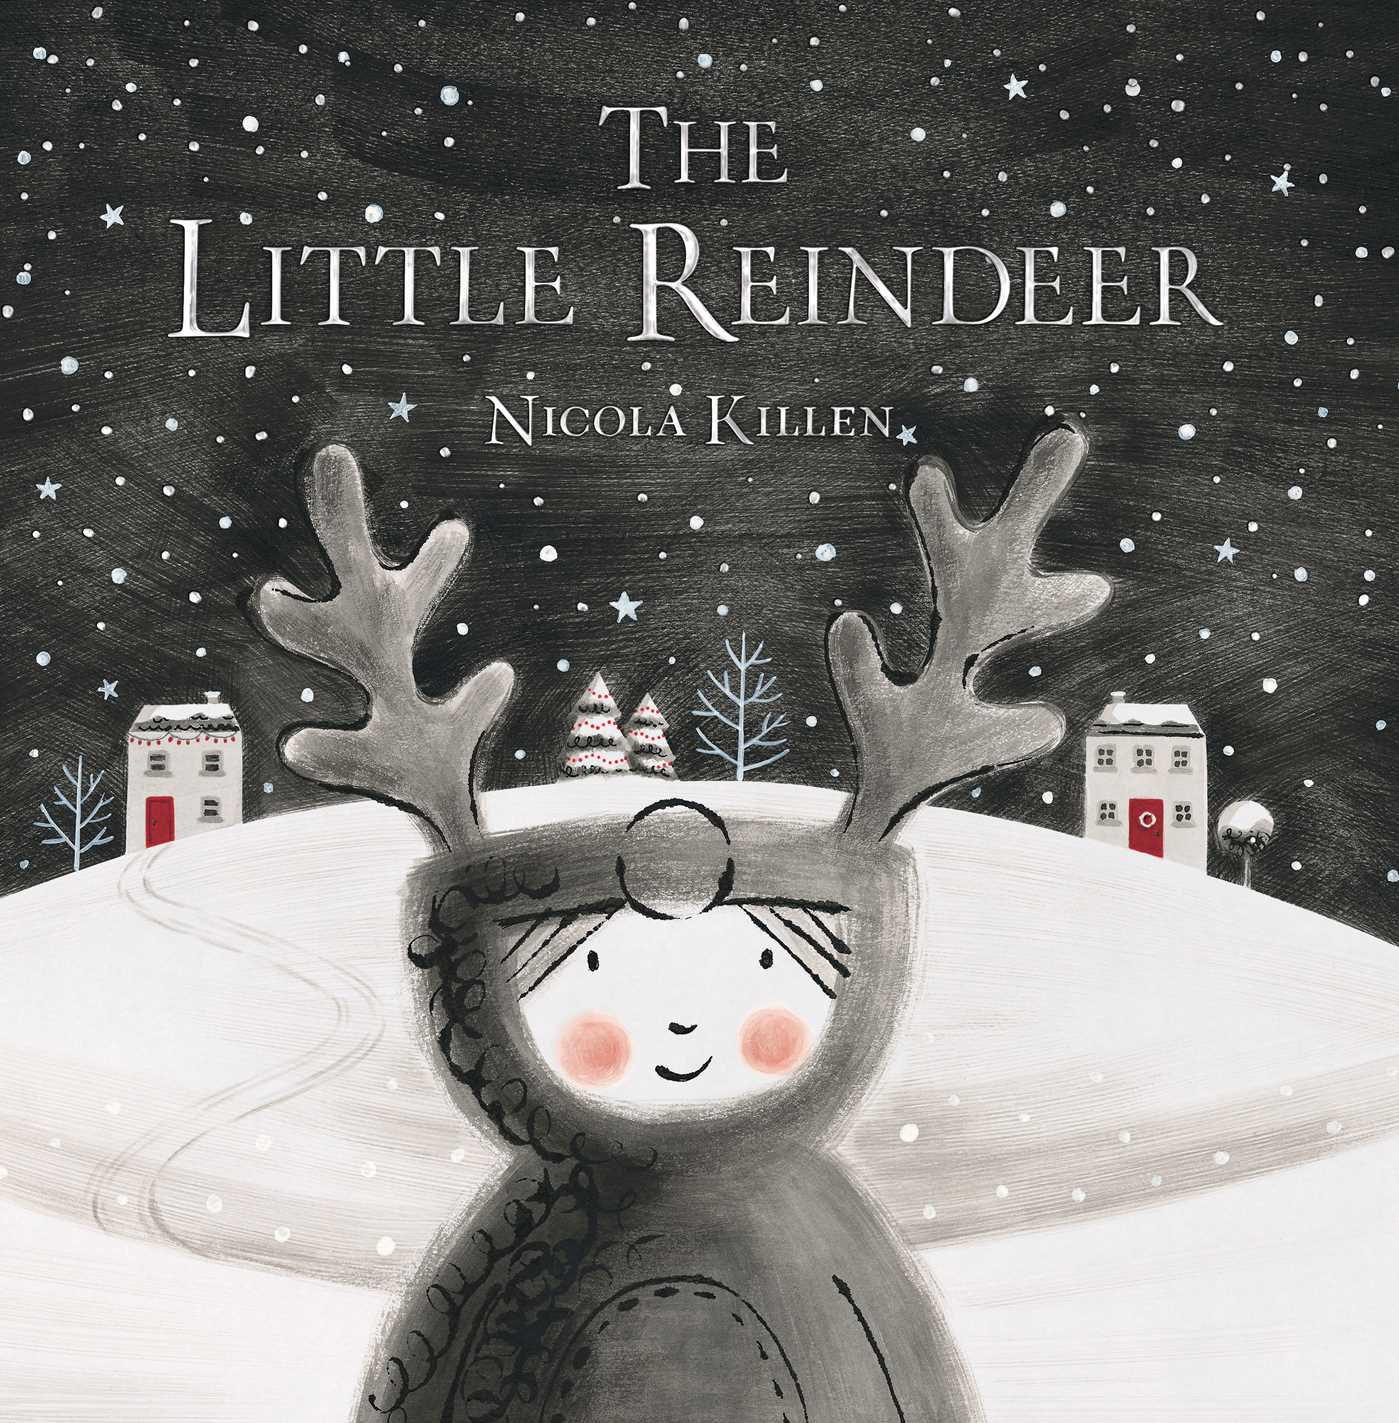 Book Buzz: The Little Reindeer